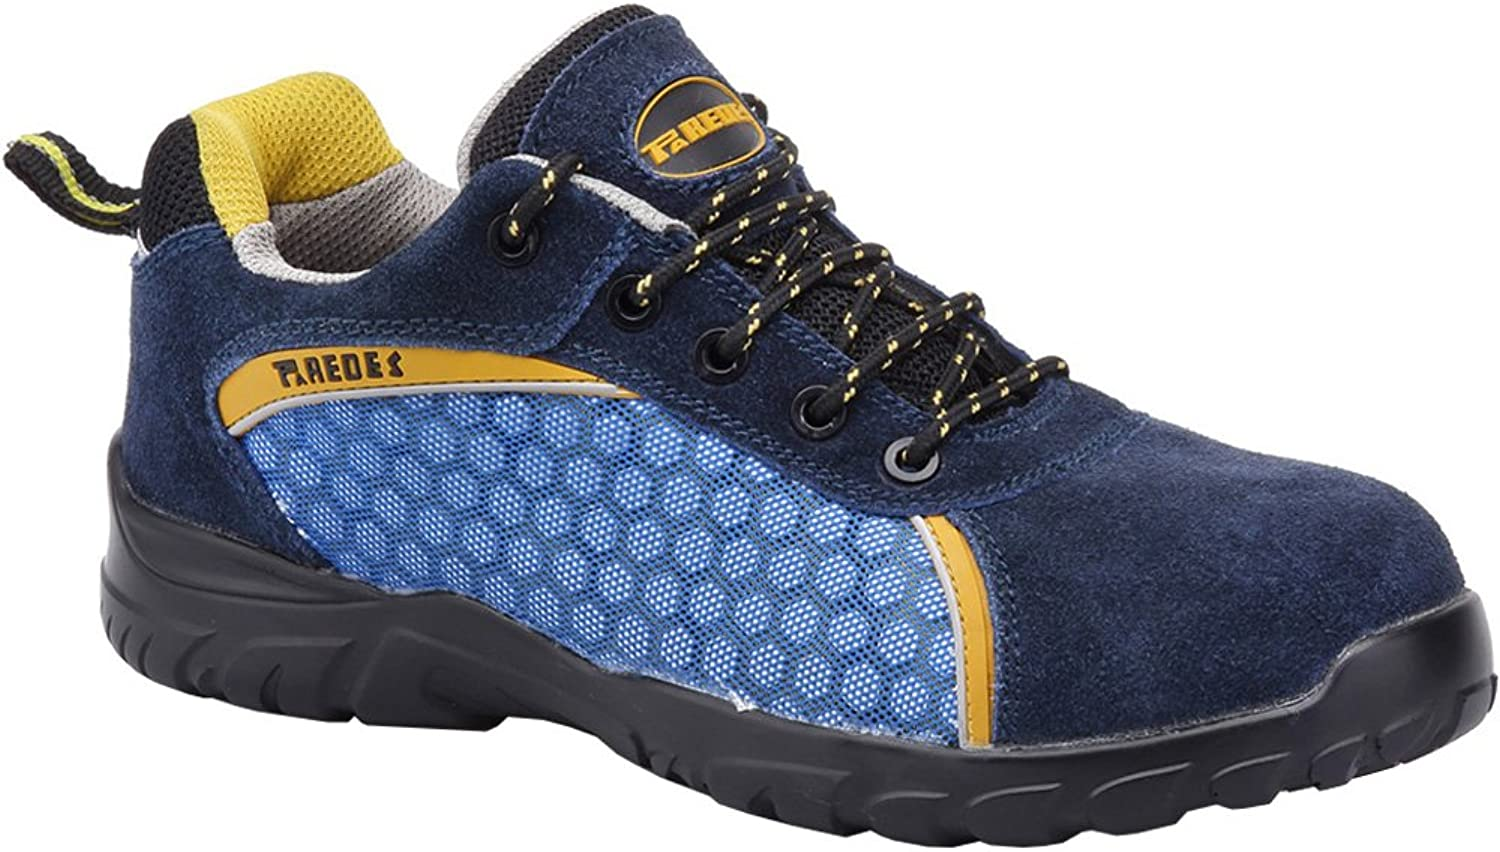 Paredes SP5013 AZ46 Safety shoes  Rubidio  S1P, Size 11, bluee - EN safety certified